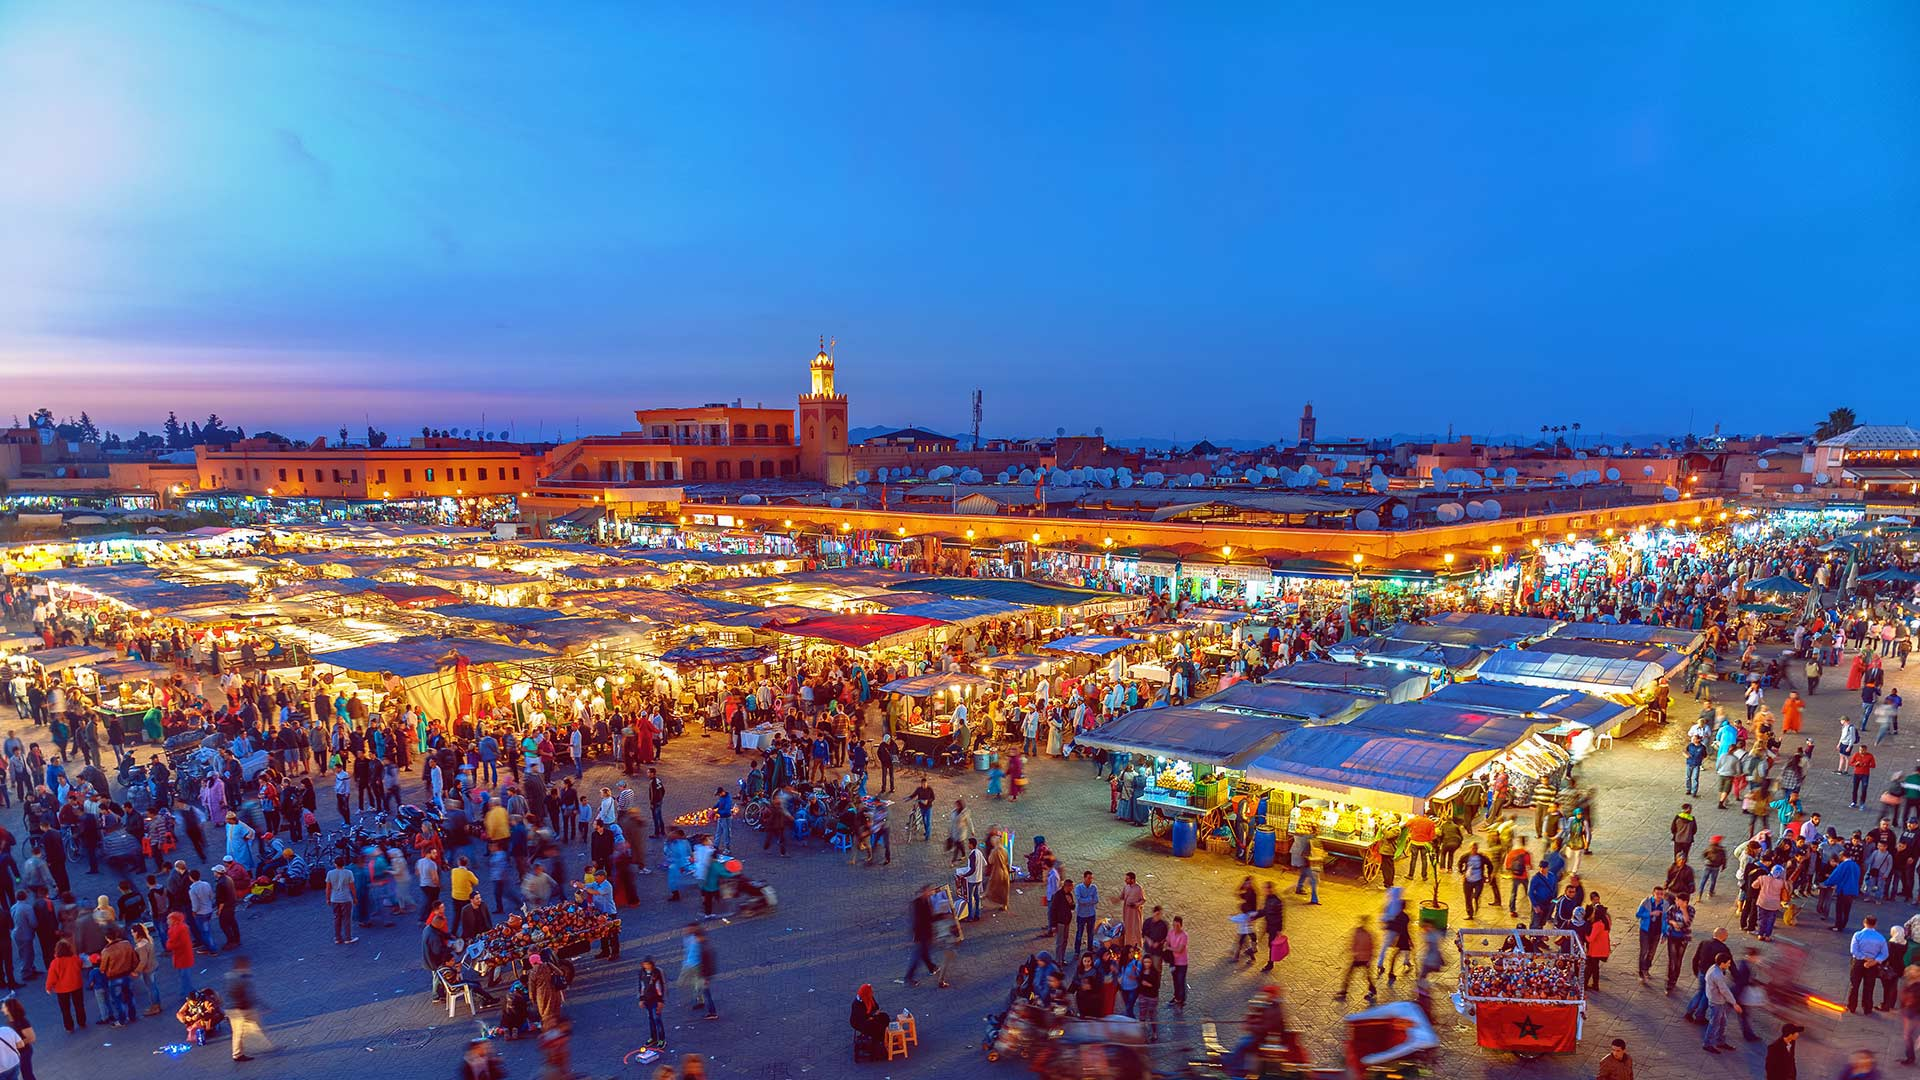 Jemaa el-Fnaa Square in Marrakesh, Morocco (© Pavliha/Getty Images)(Bing United States)